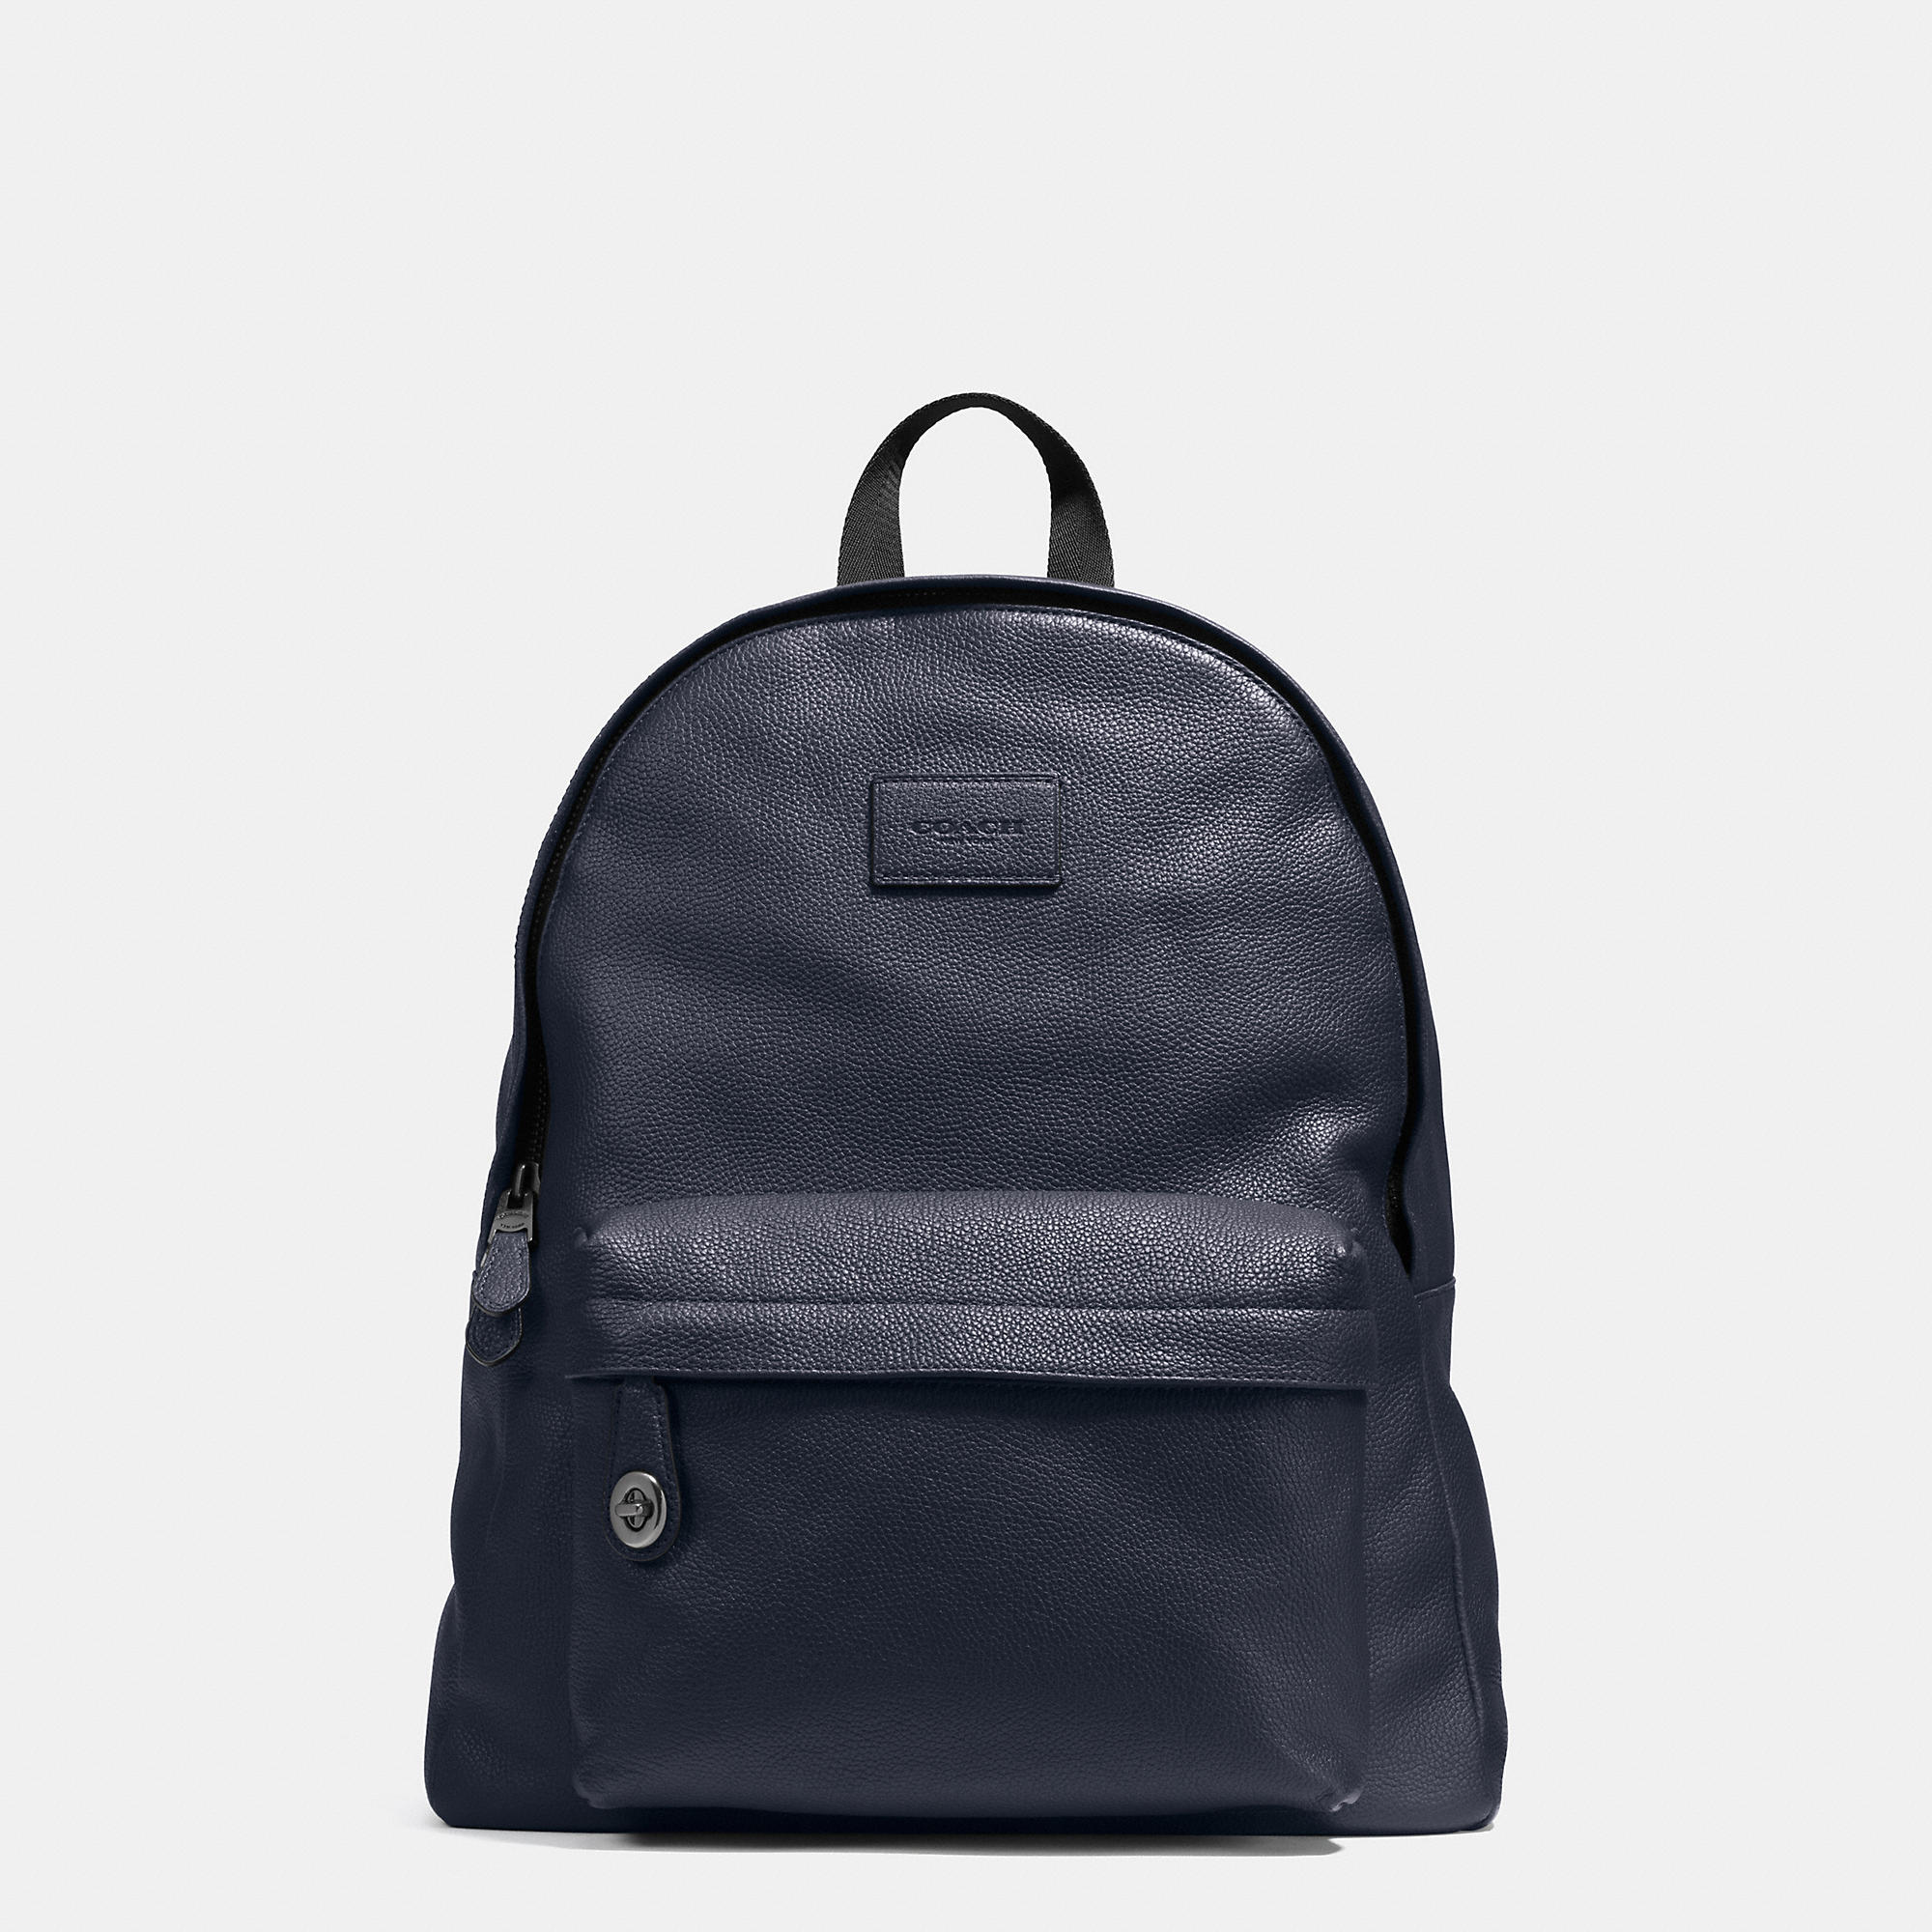 Coach Campus Backpack In Pebble Leather